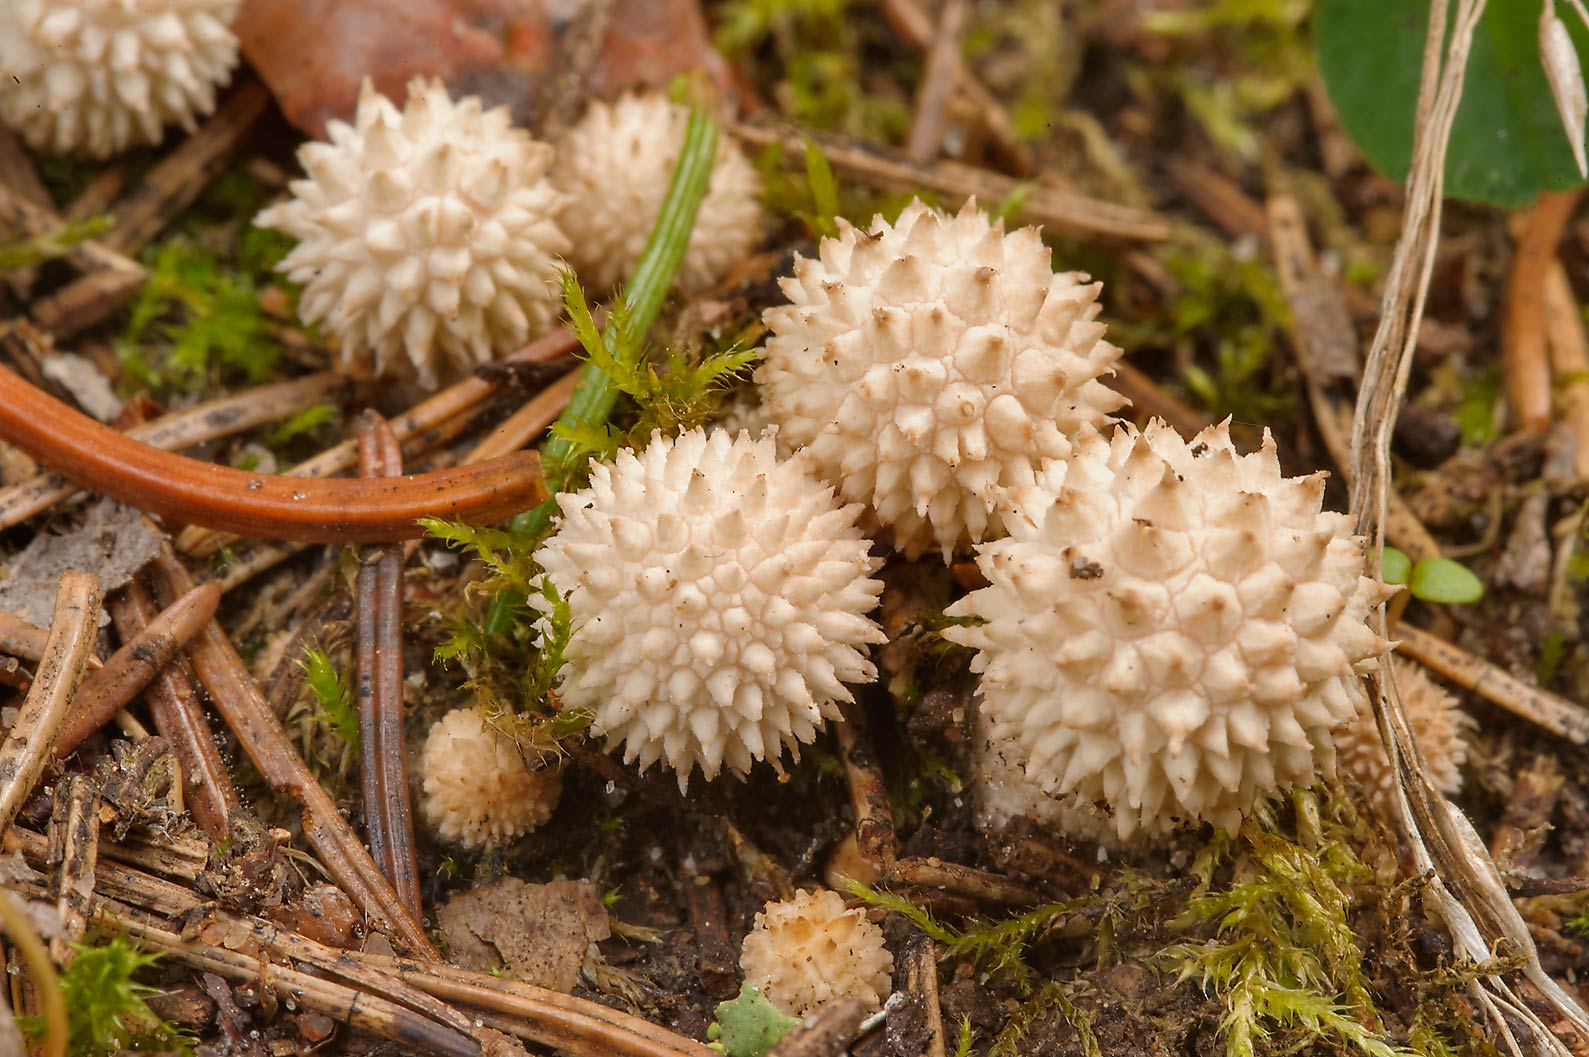 Young tiny common puffball mushrooms (Lycoperdon...suburb of St.Petersburg. Russia